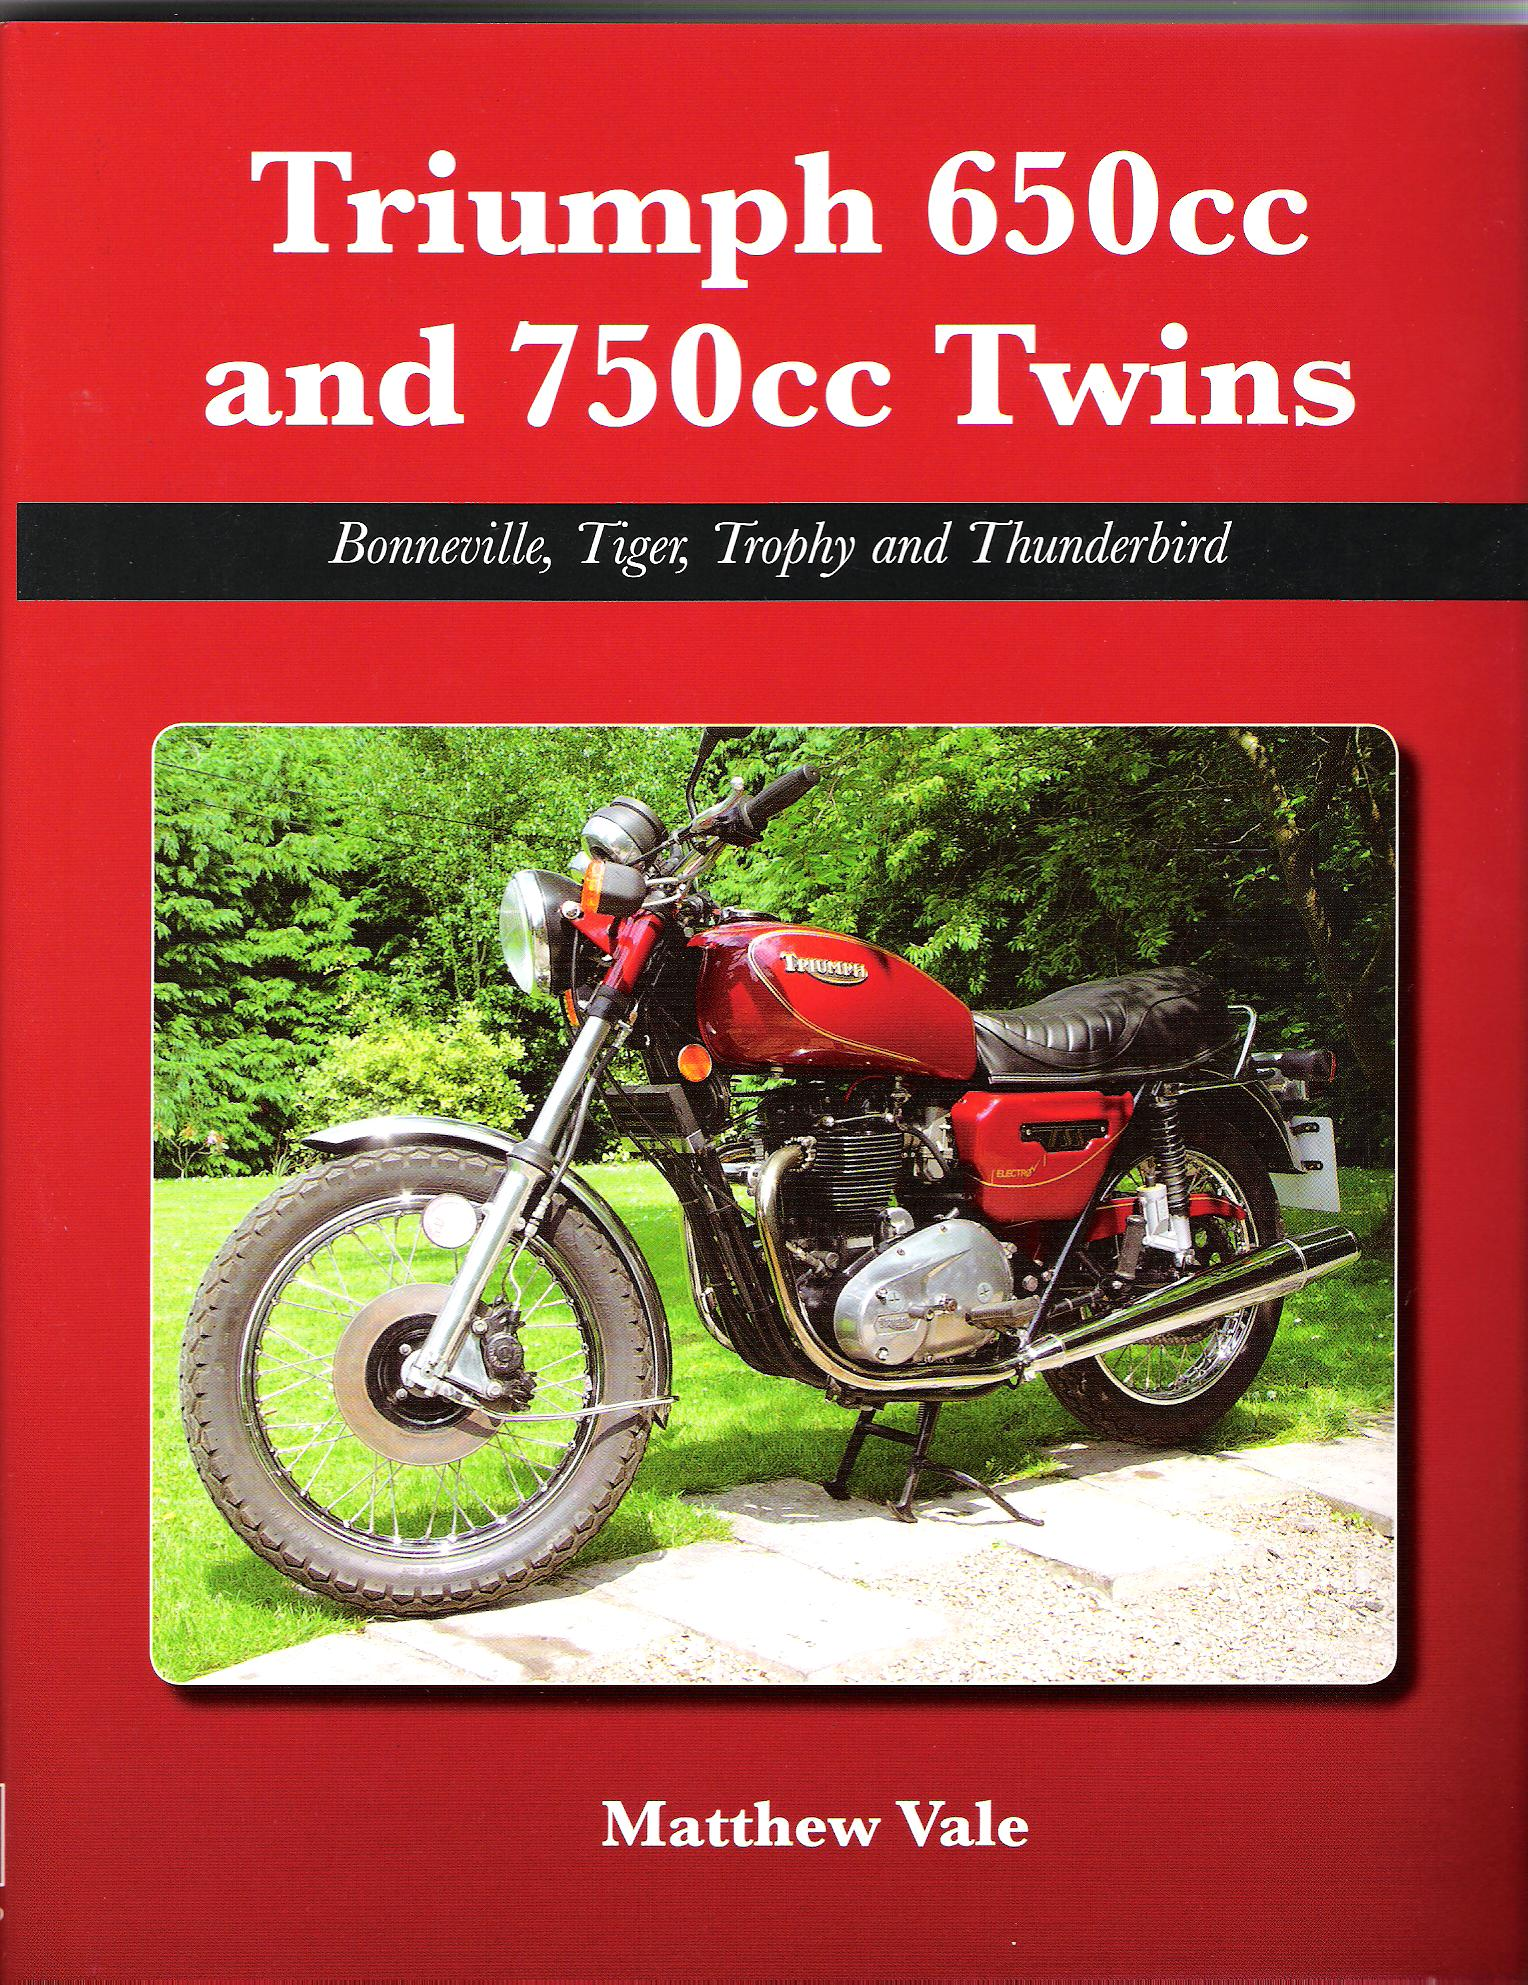 Image for Triumph 650cc and 750cc Twins: Bonneville, Tiger, Trophy and Thunderbird.